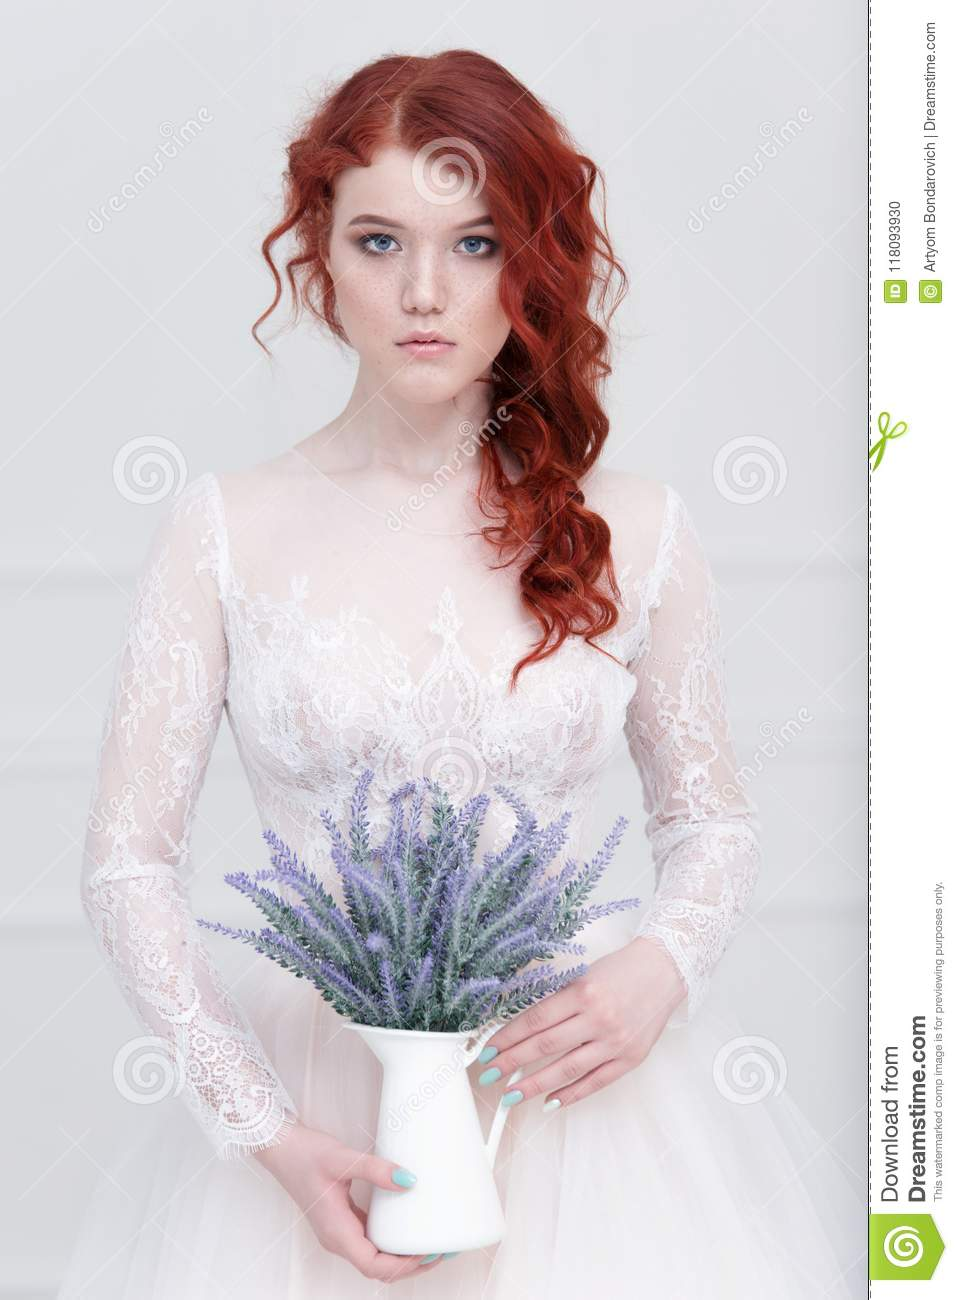 Tender retro portrait of a young beautiful dreamy redhead woman in beautiful white dress with bouquet of lavender.